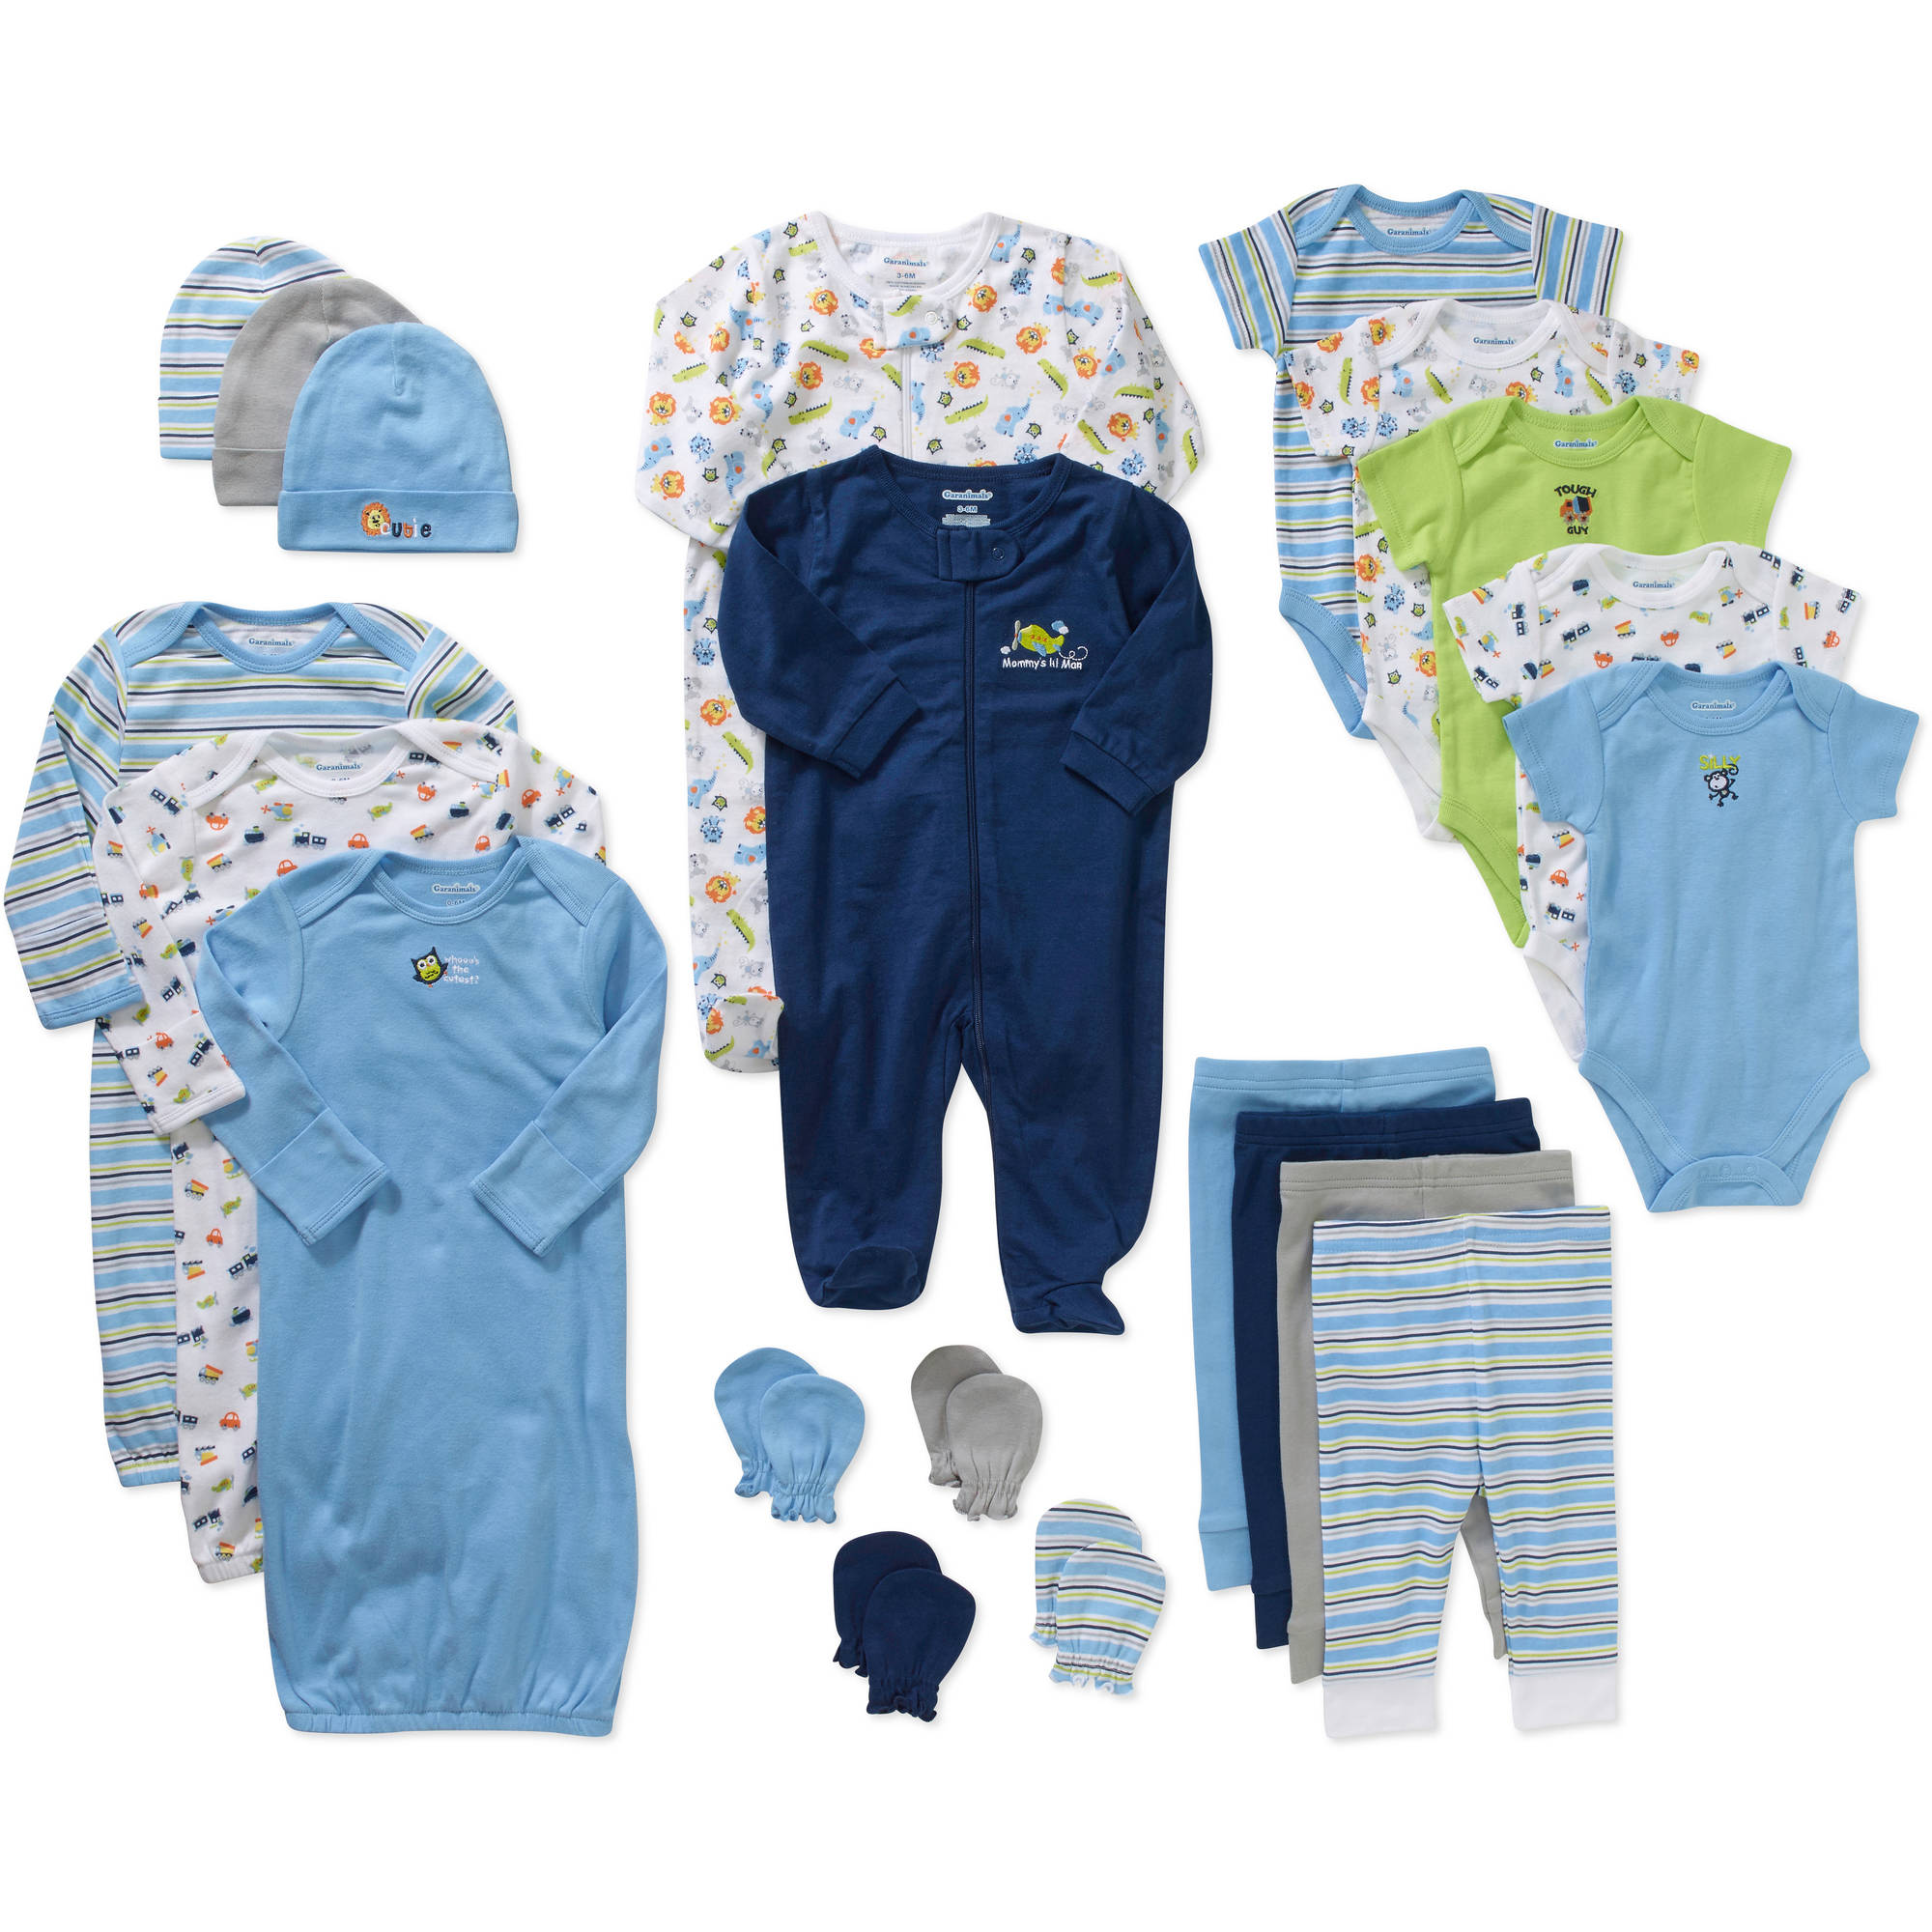 Garanimals Newborn Baby Boy 21 Pc Layette Baby Shower Gift Set